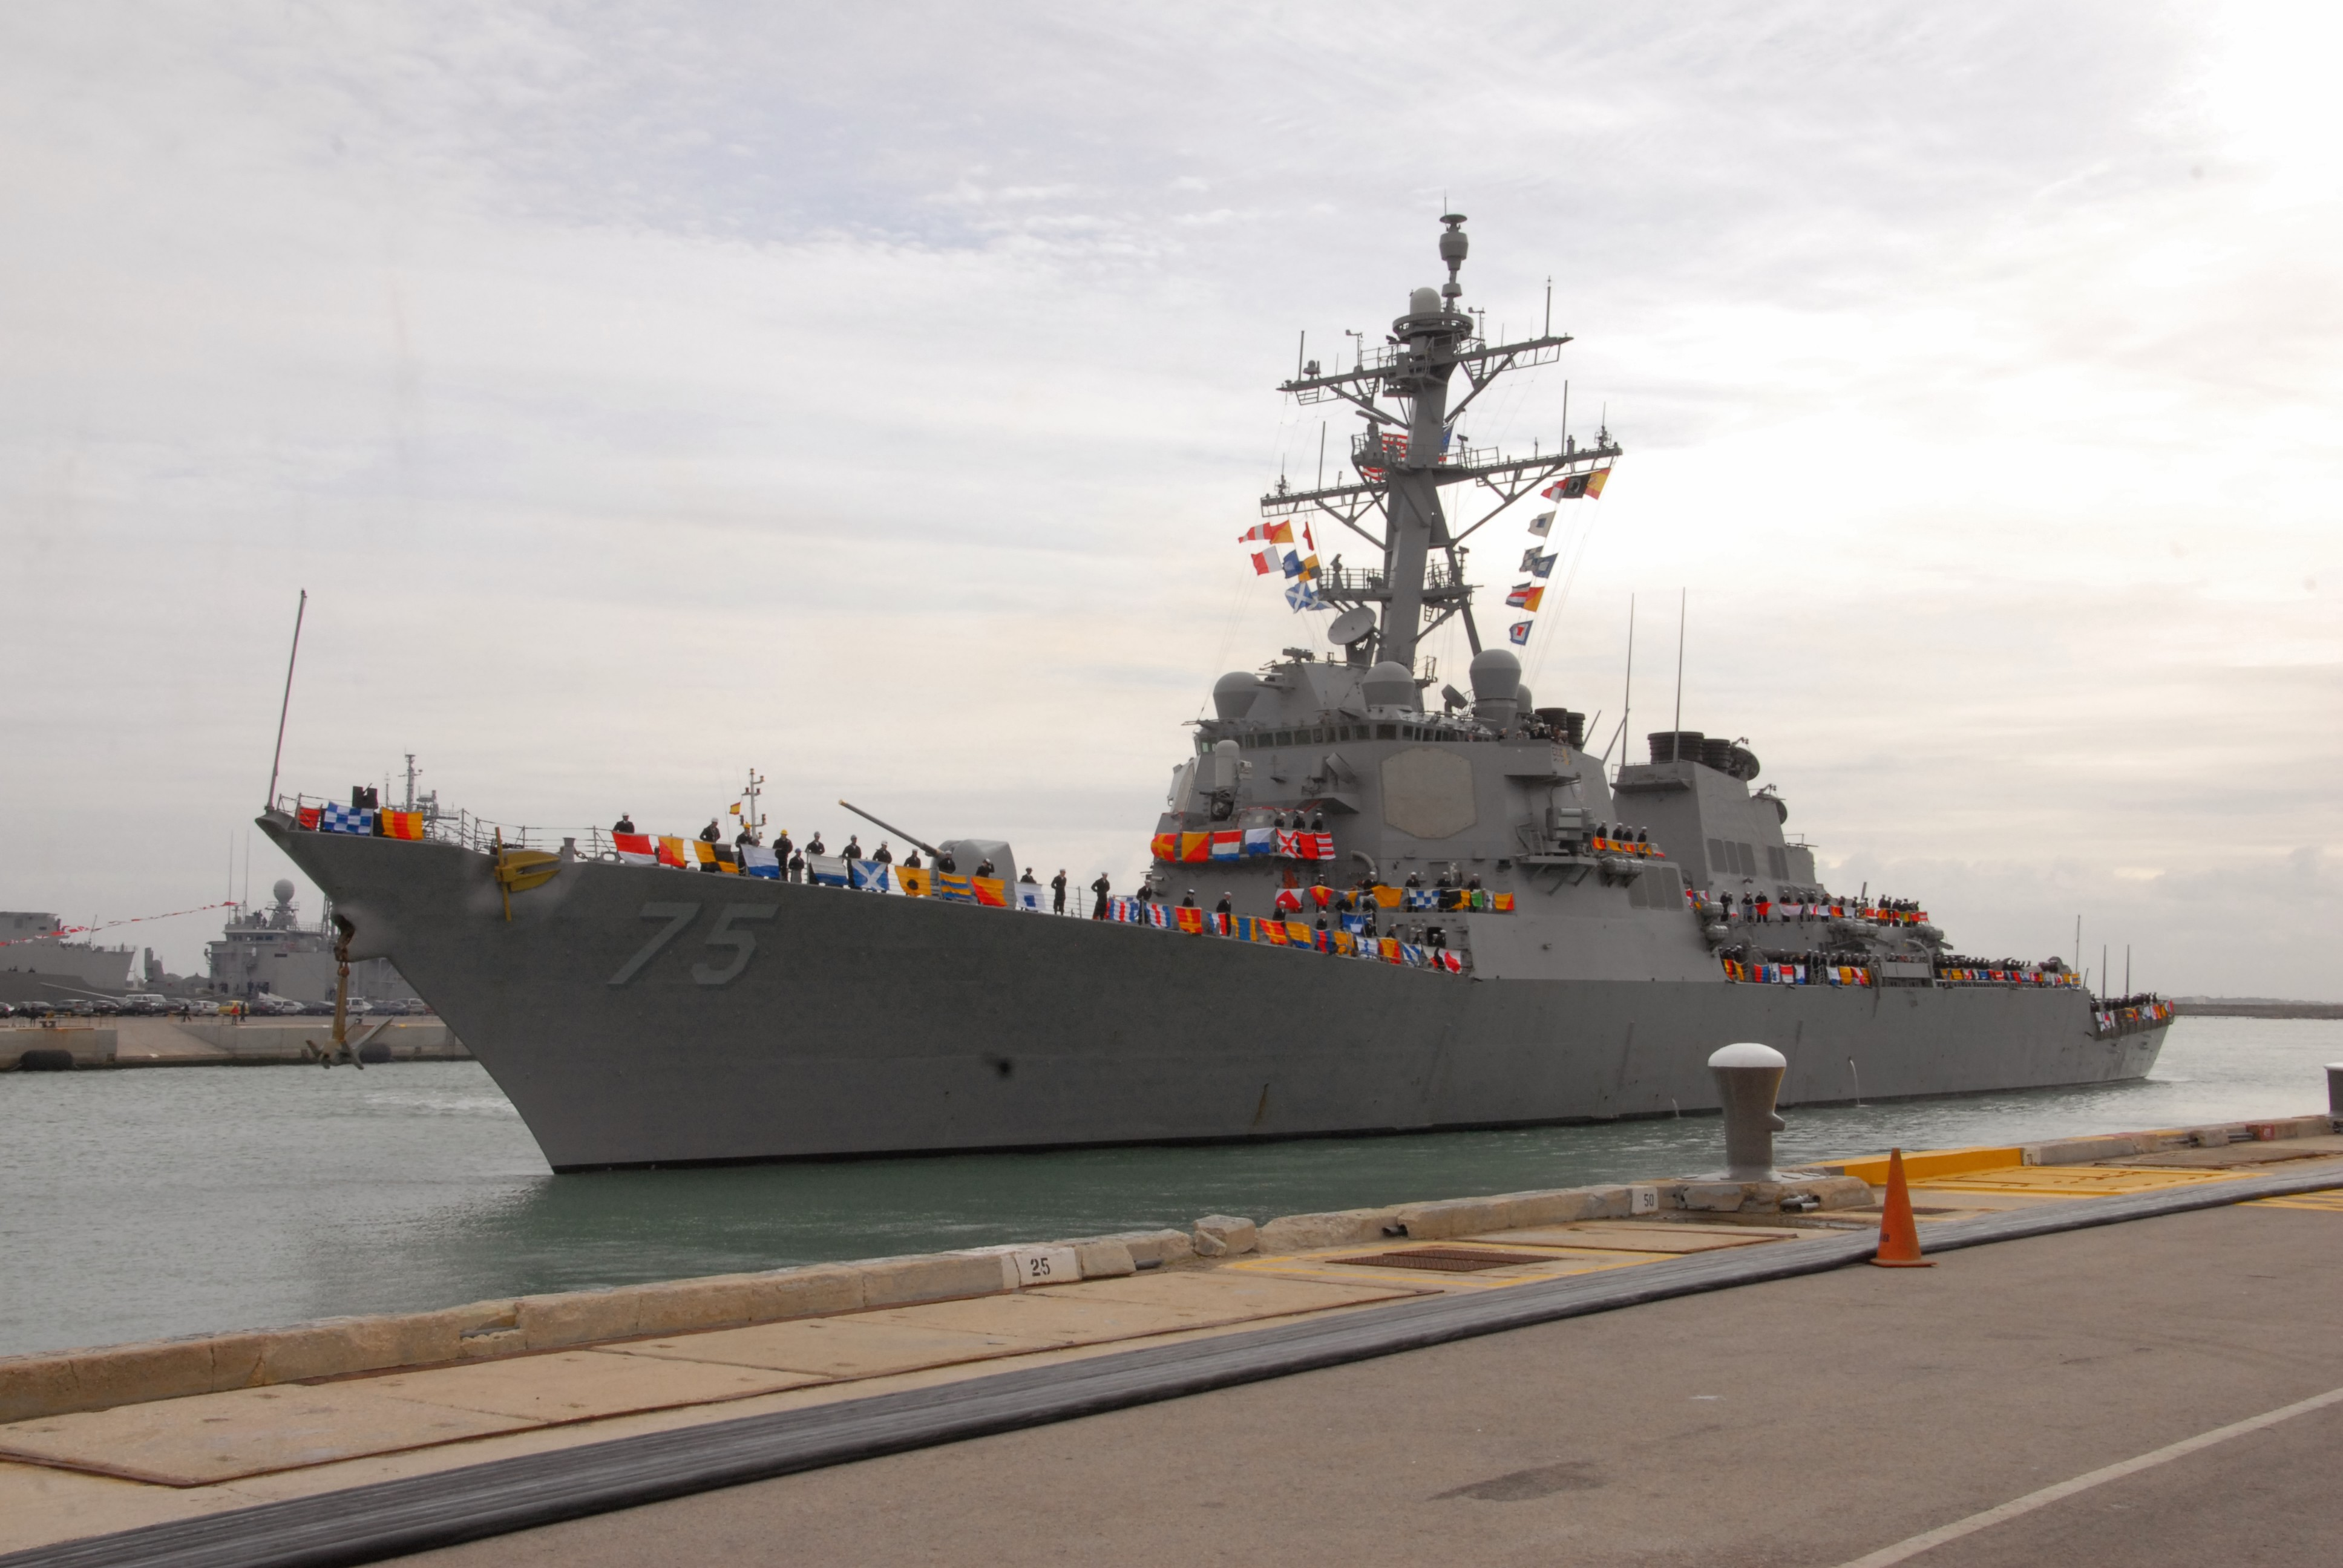 USS Donald Cook (DDG-75) arrives at Naval Station Rota, Spain on Feb. 11, 2014. US Navy Photo